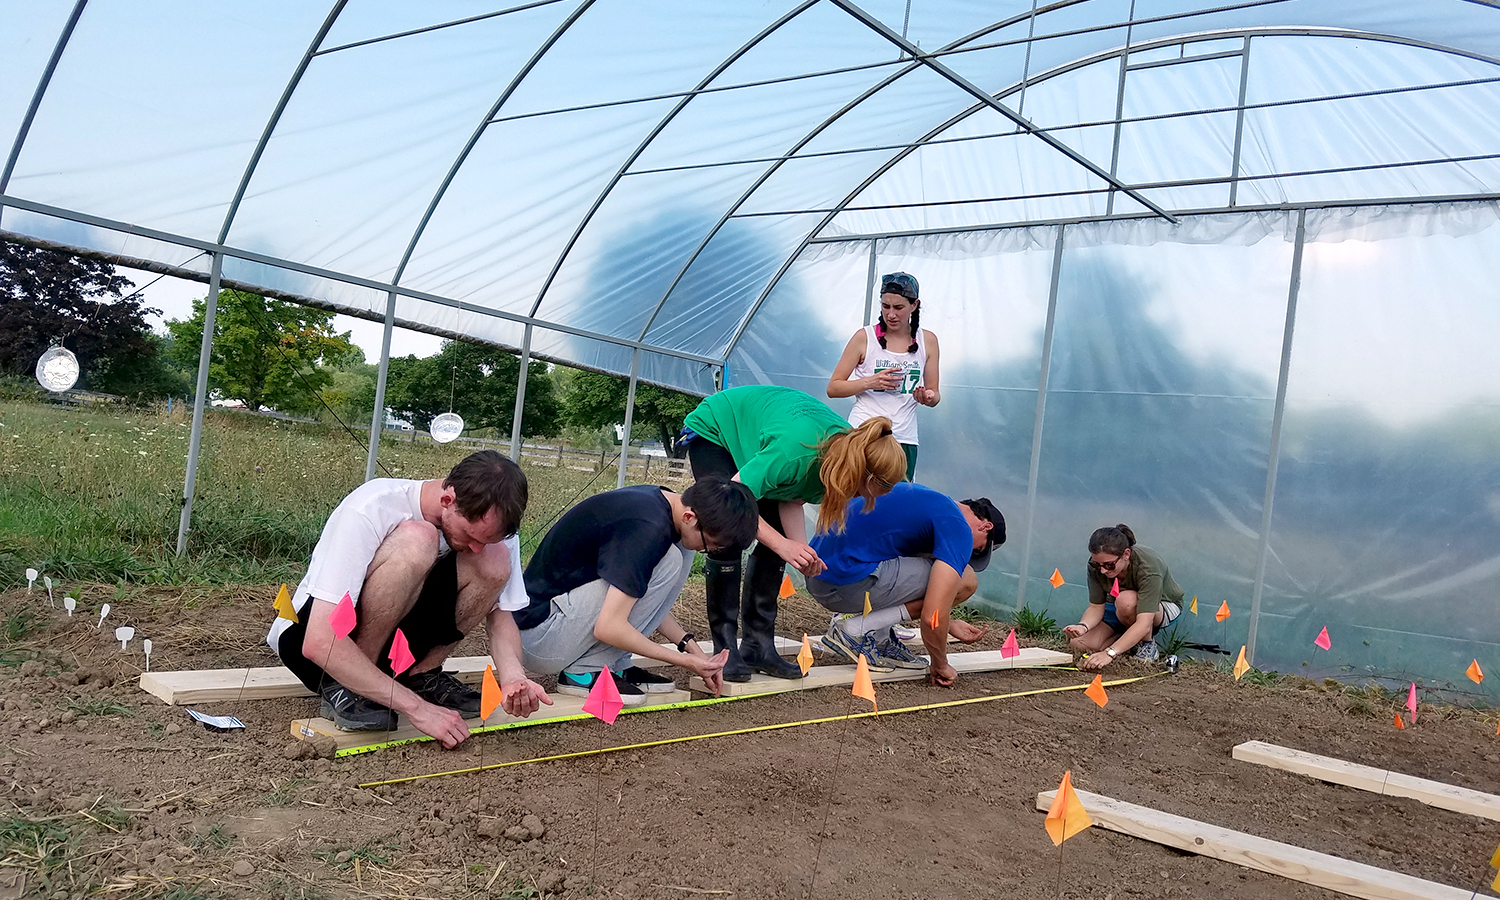 Attached is a photo of Environmental Studies seniors in my ENV400: Group SIE class planting seeds in the high tunnel at HWS Fricolin Farm. The food we are growing will be donated to the Geneva Community Lunch Program as part of the Greens Growing Project, a multi-year collaboration between the Environmental Studies Program, the Finger Lakes Institute Food Systems Program and the Lunch Program/Catholic Charities. Over the course of the past two years we have donated over 40 pounds of fresh produce and more than 300 volunteer hours. Pretty cool stuff, huh?!